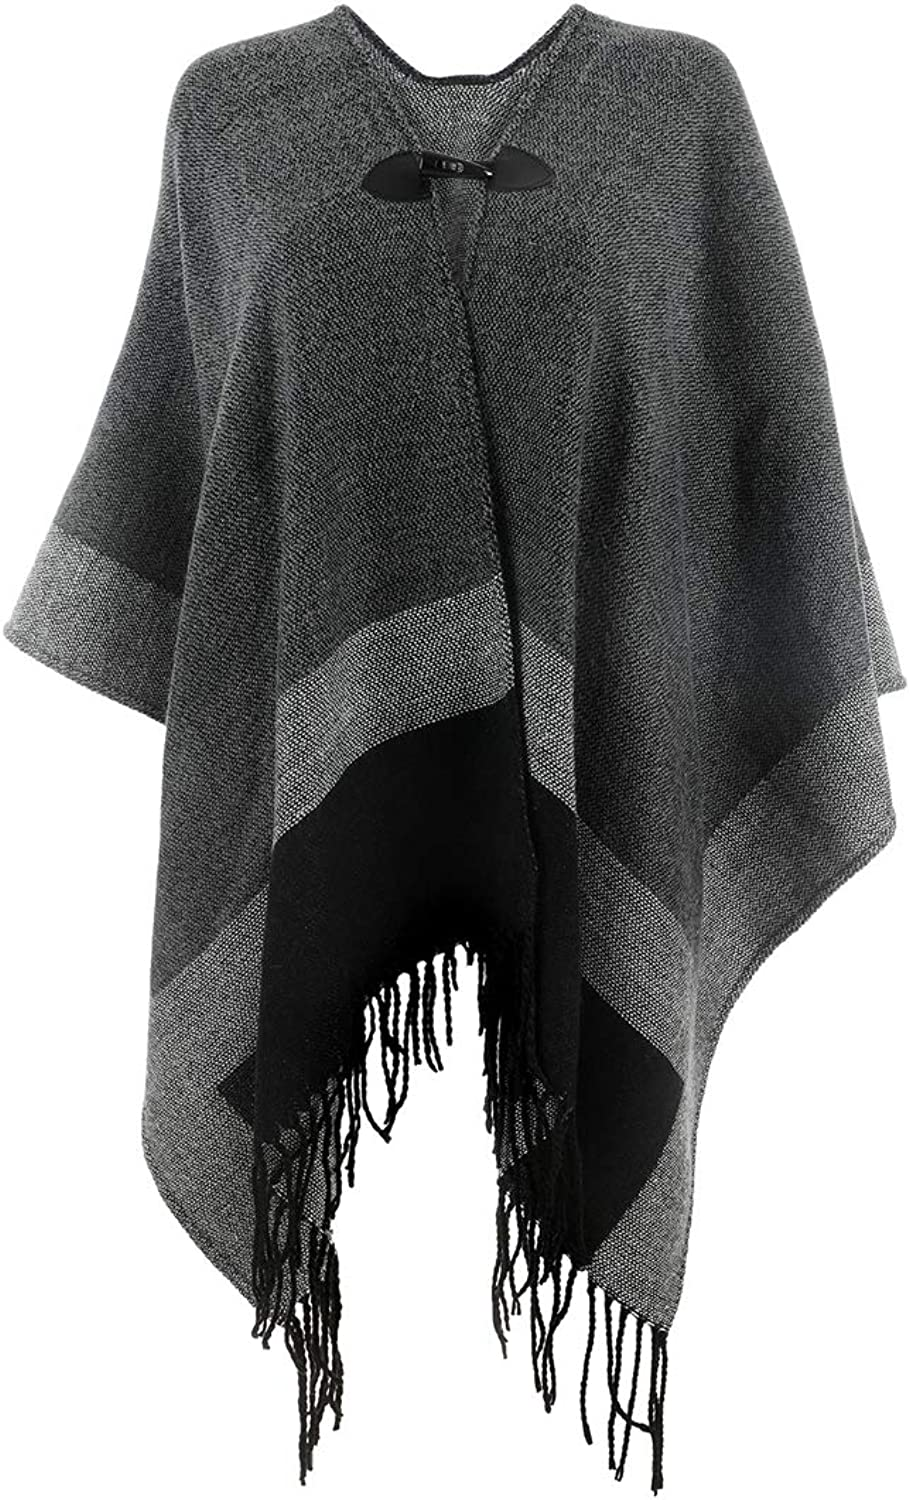 Women's Reversible Winter Knitted Faux Cashmere Fringe Poncho Capes Shawl Cardigans Blanket Wrap Sweater Coat